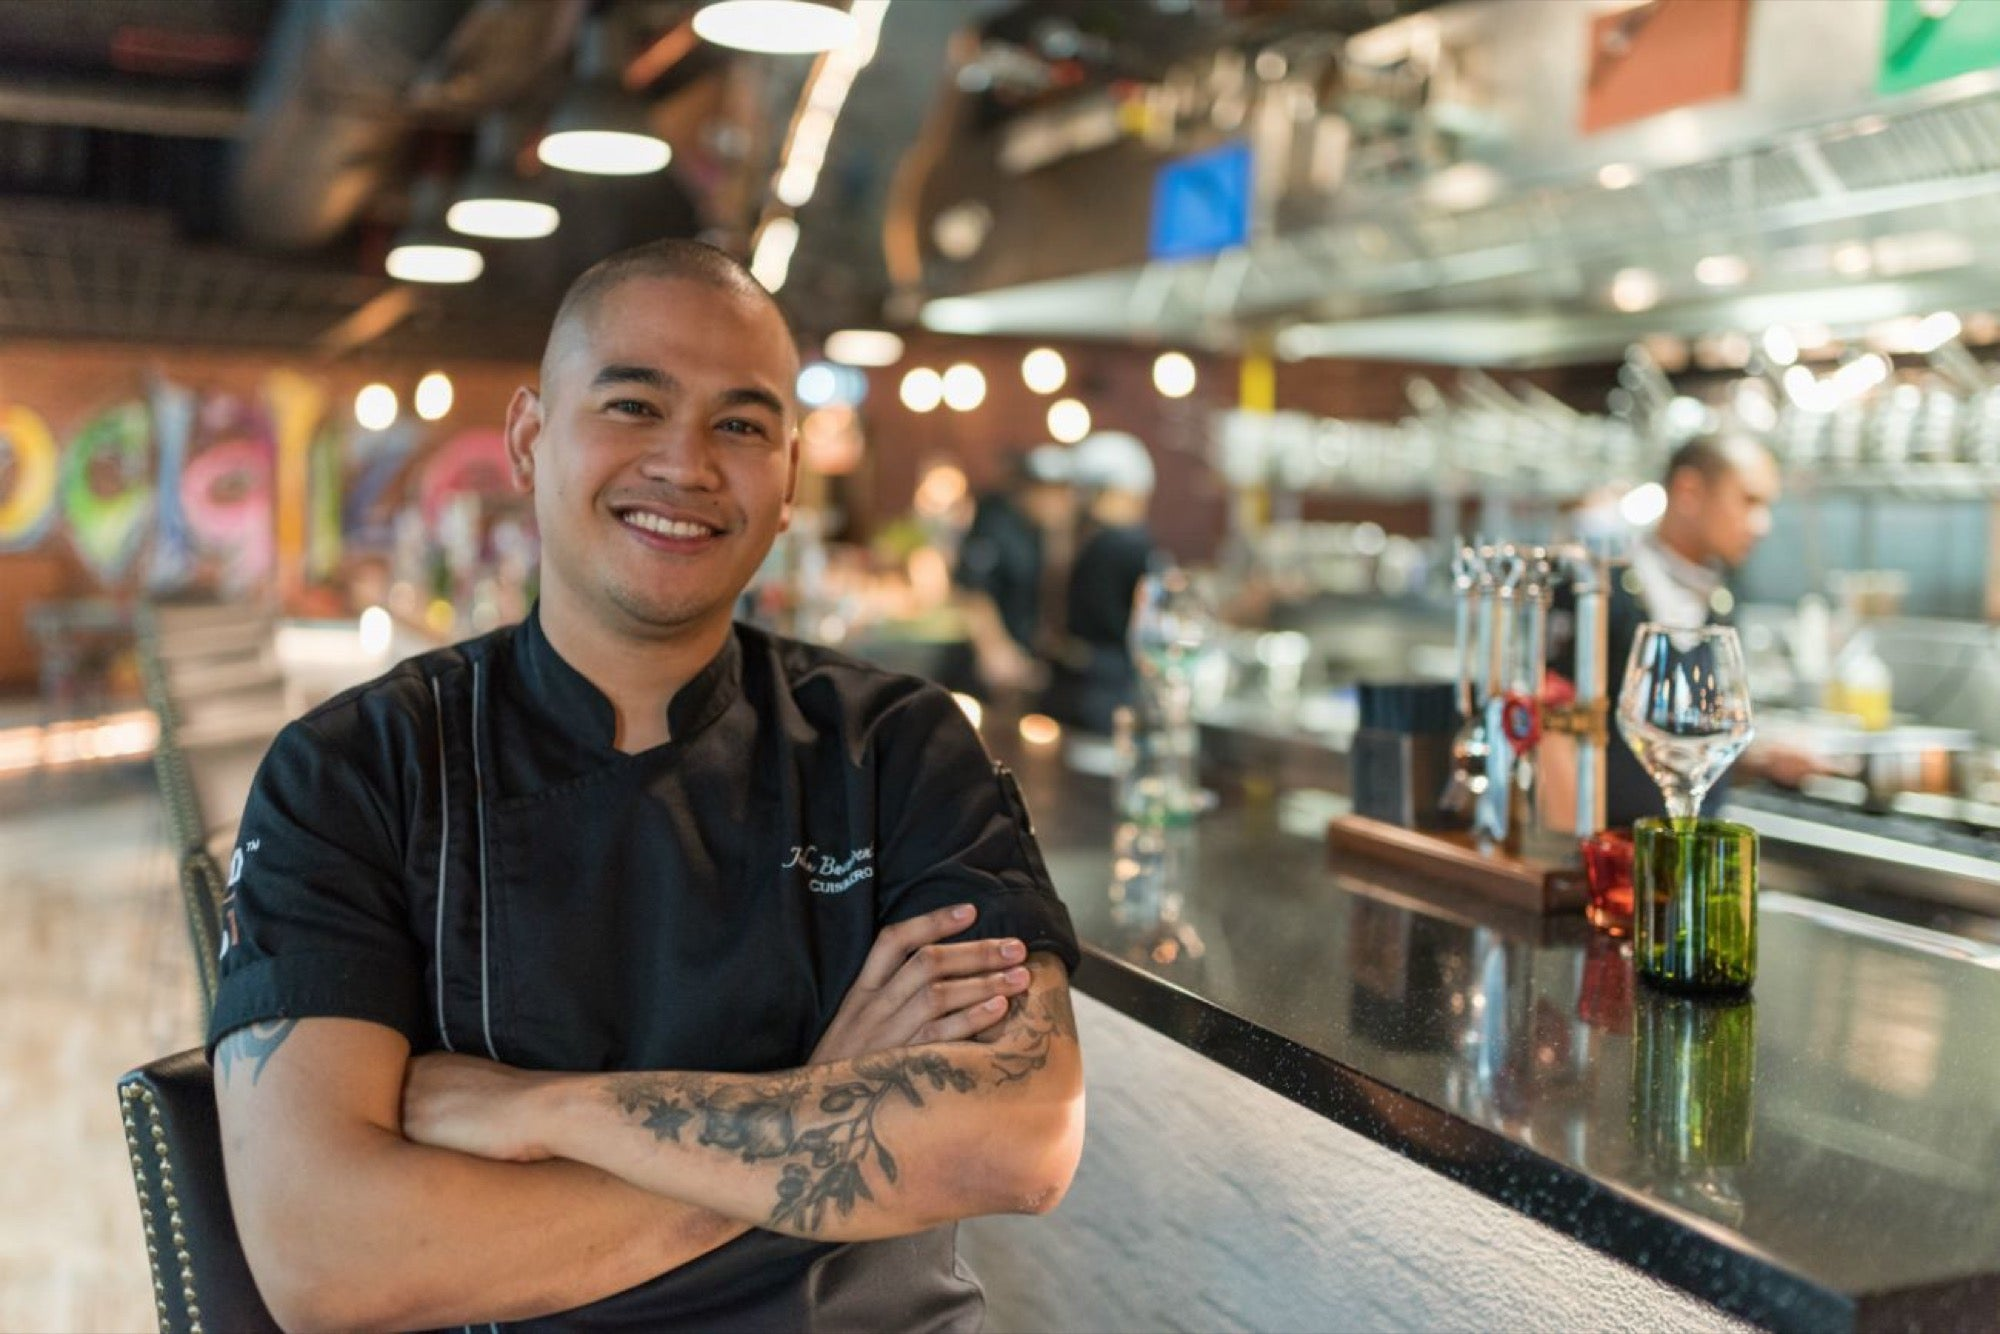 Chef John Buenaventura S Cuisinero Uno Is Making A Mark On Dubai S Culinary Scene